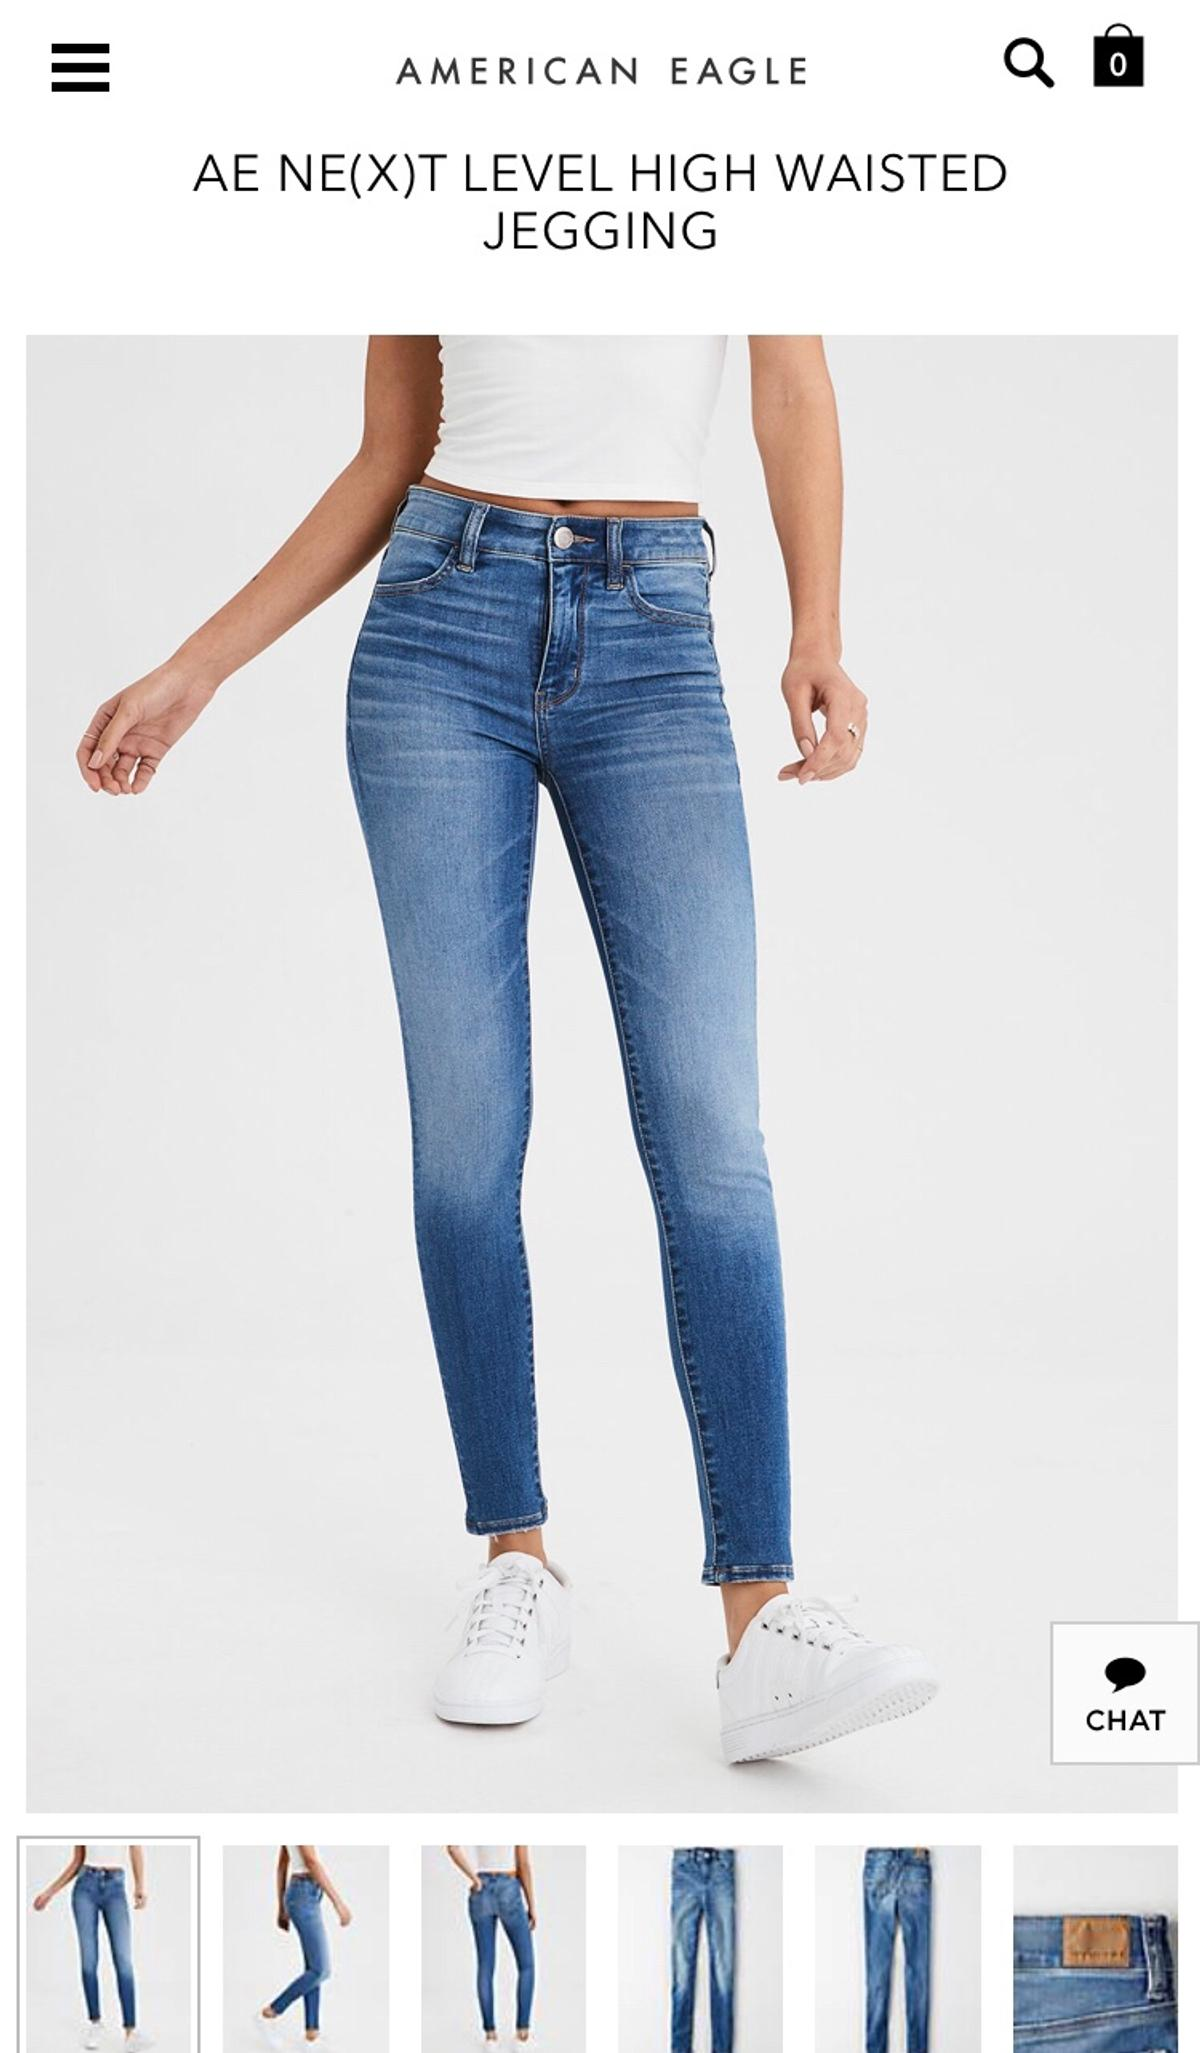 American Eagle jeans in OX5 Cherwell for £22 00 for sale